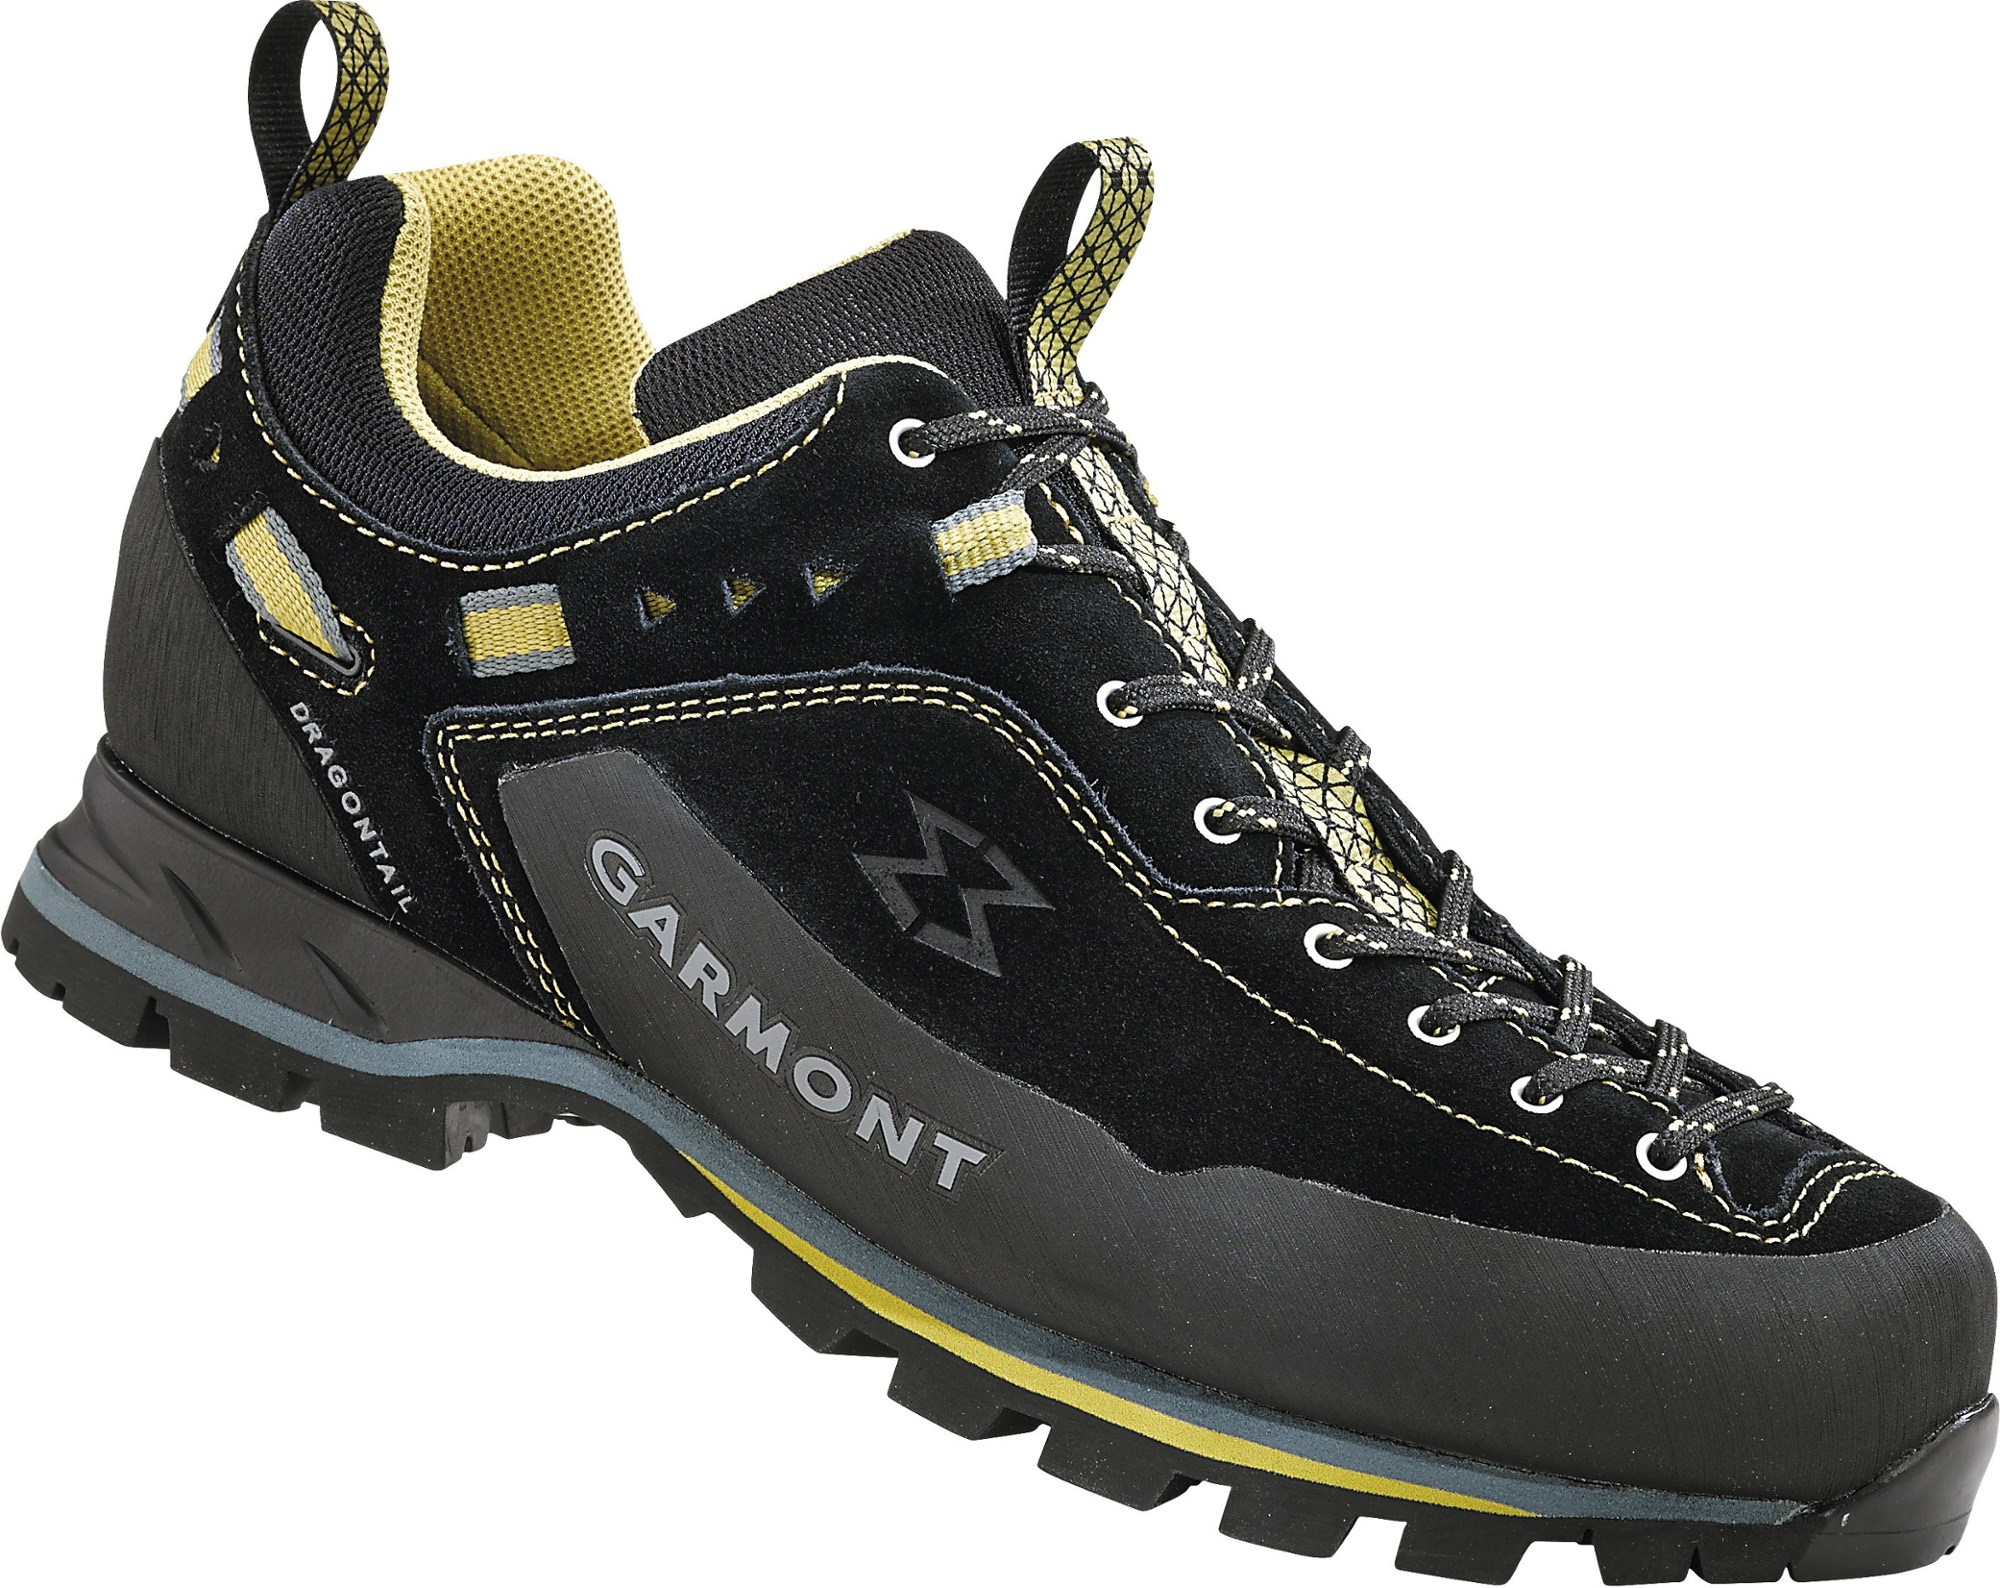 Garmont Dragontail MNT Hiking Shoes - Men's